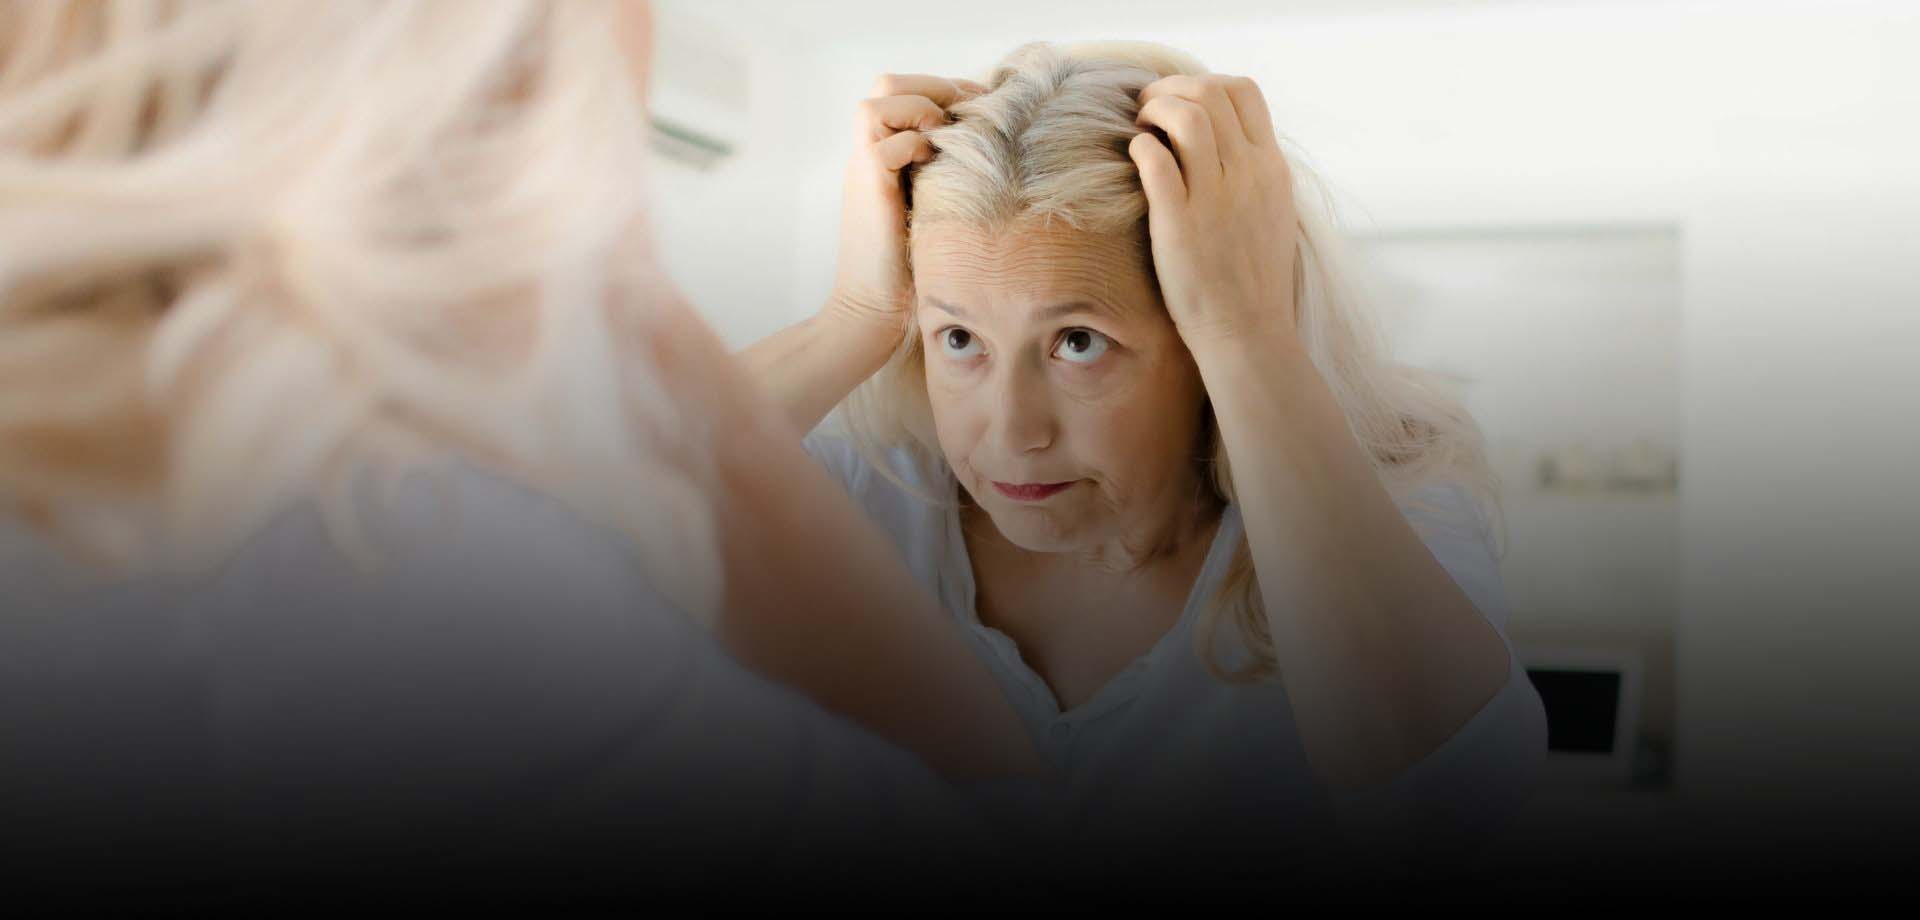 At remove dandruff home to naturally how Dandruff Home